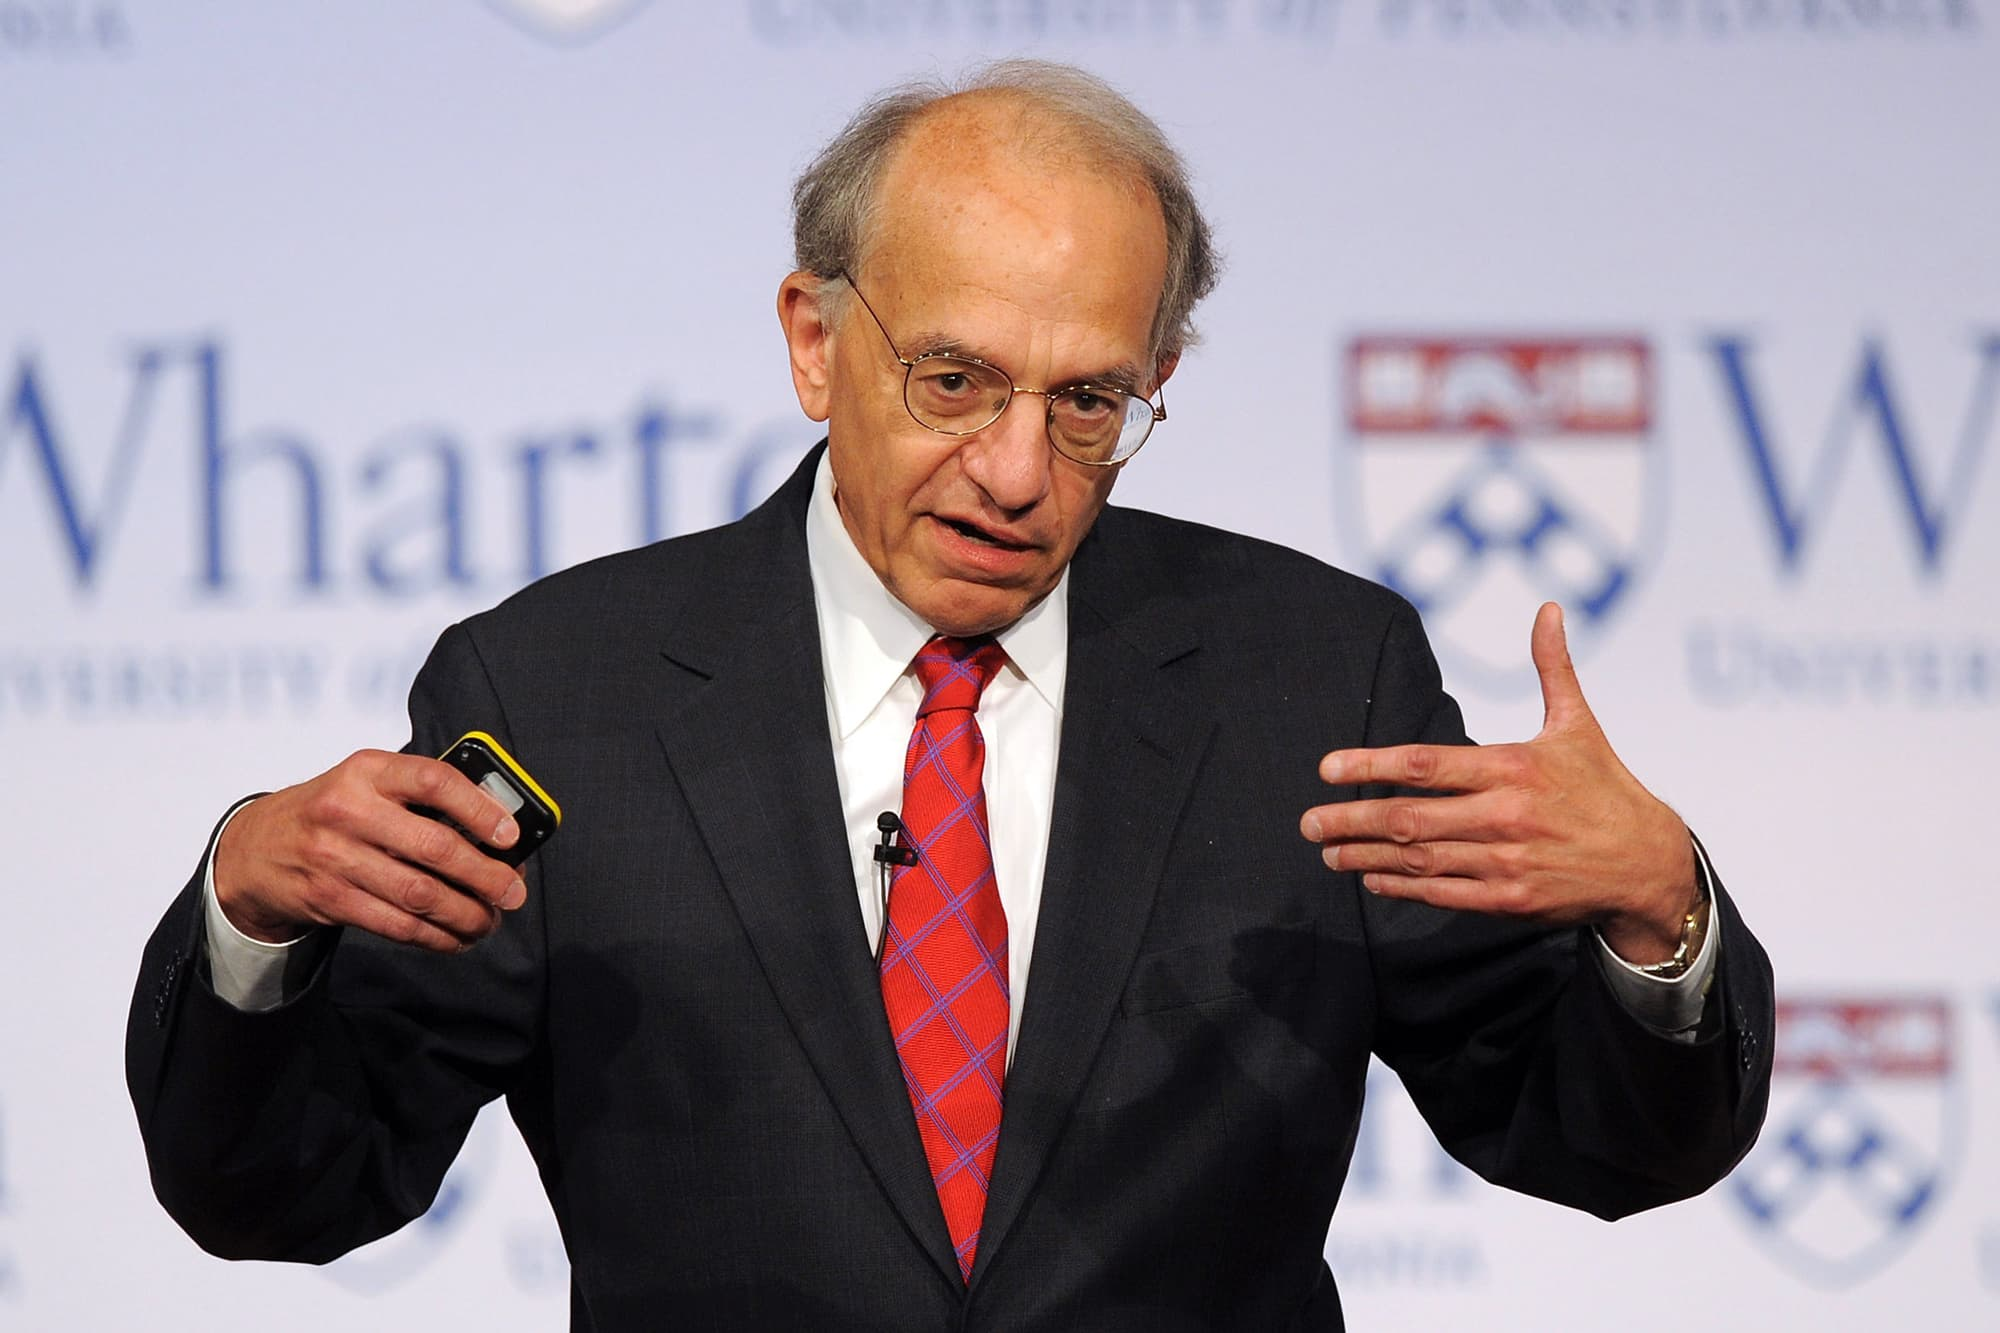 Jeremy Siegel: Dow could hit 30,000 in the next 10 trading days, but danger lurks